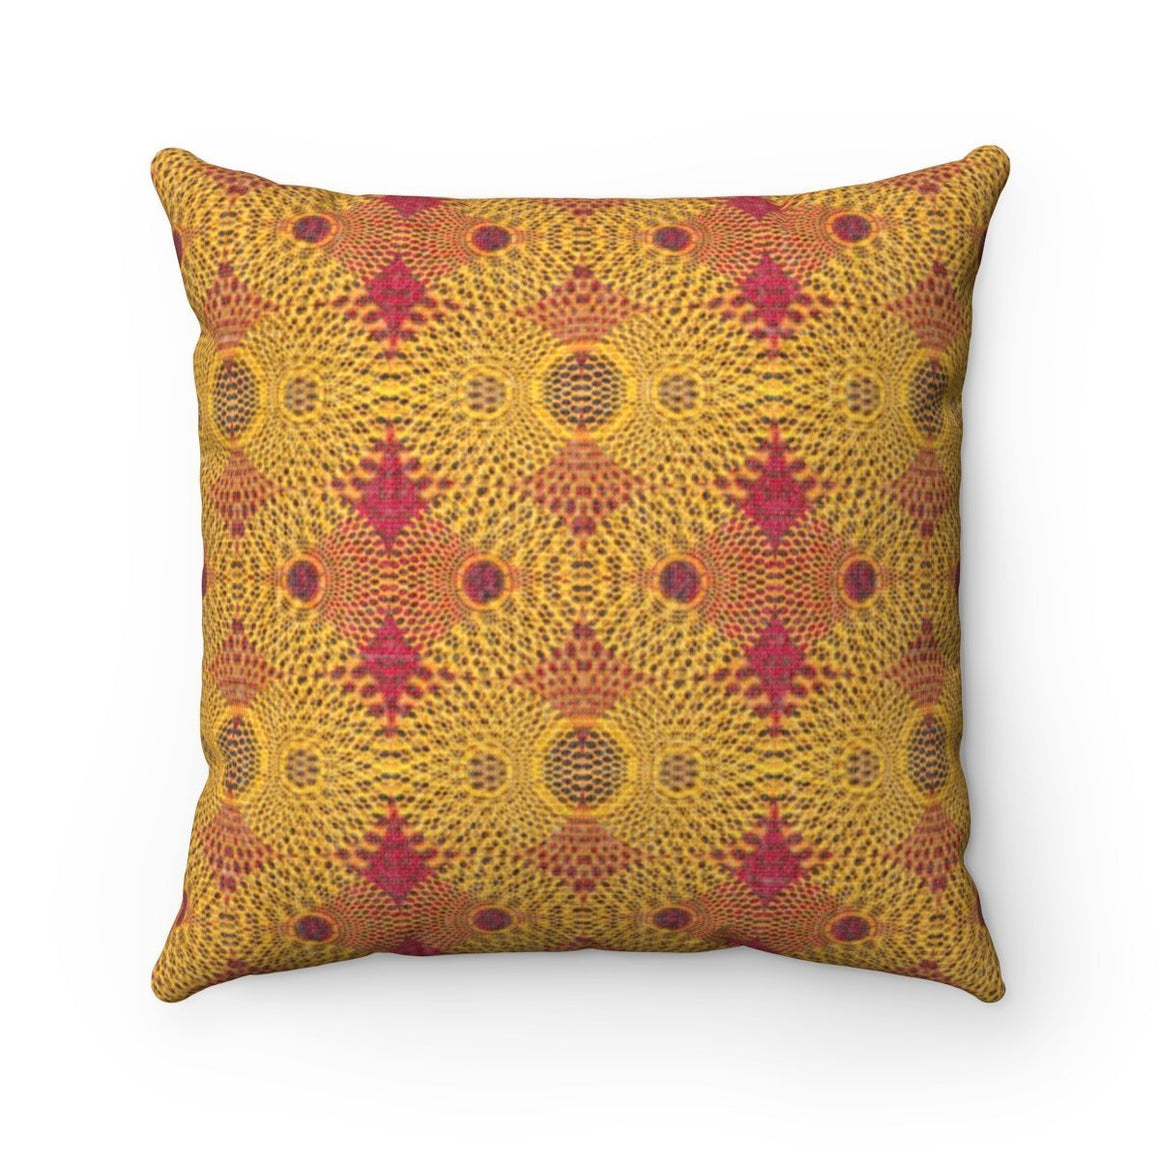 Sunburst Pillow Home Decor 14x14